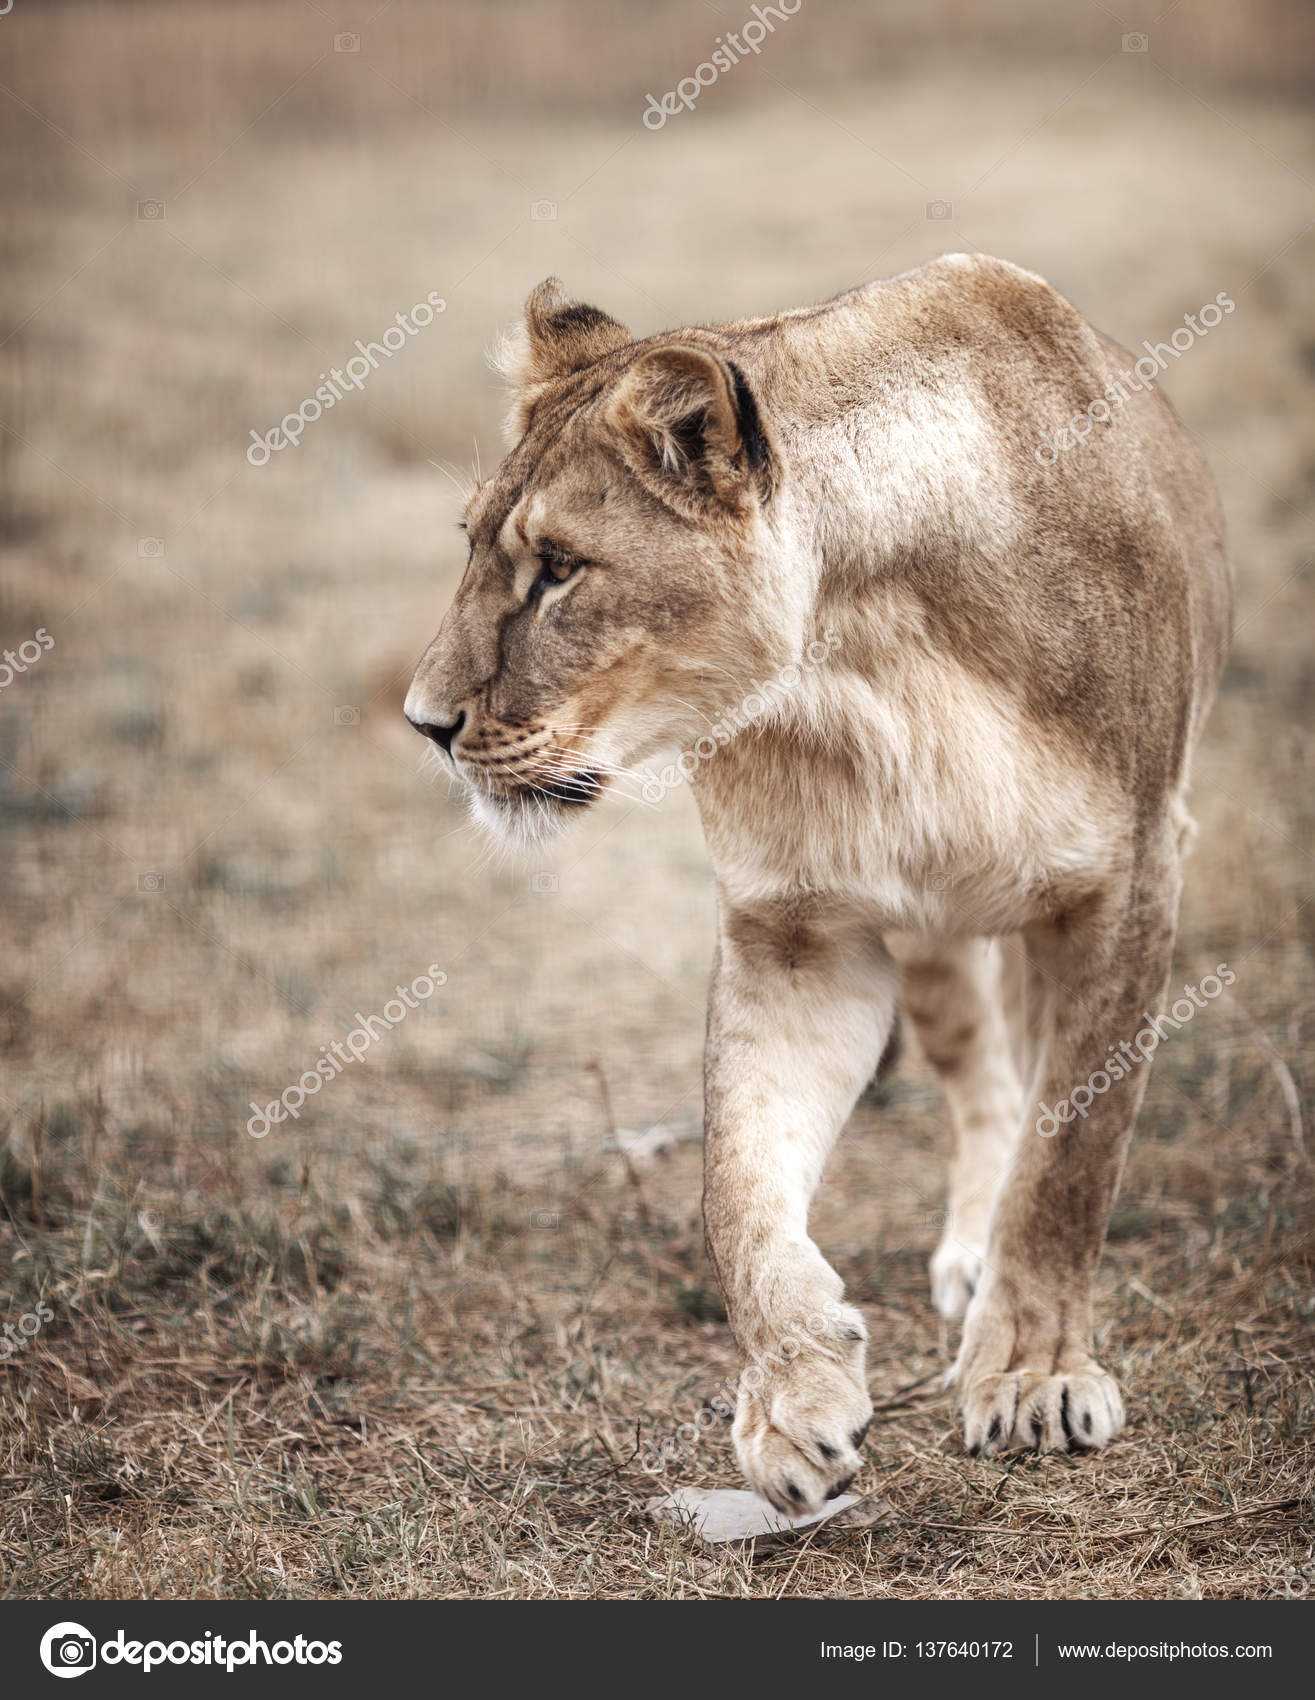 Lioness female (Panthera leo) profile view. lioness in the savan ...